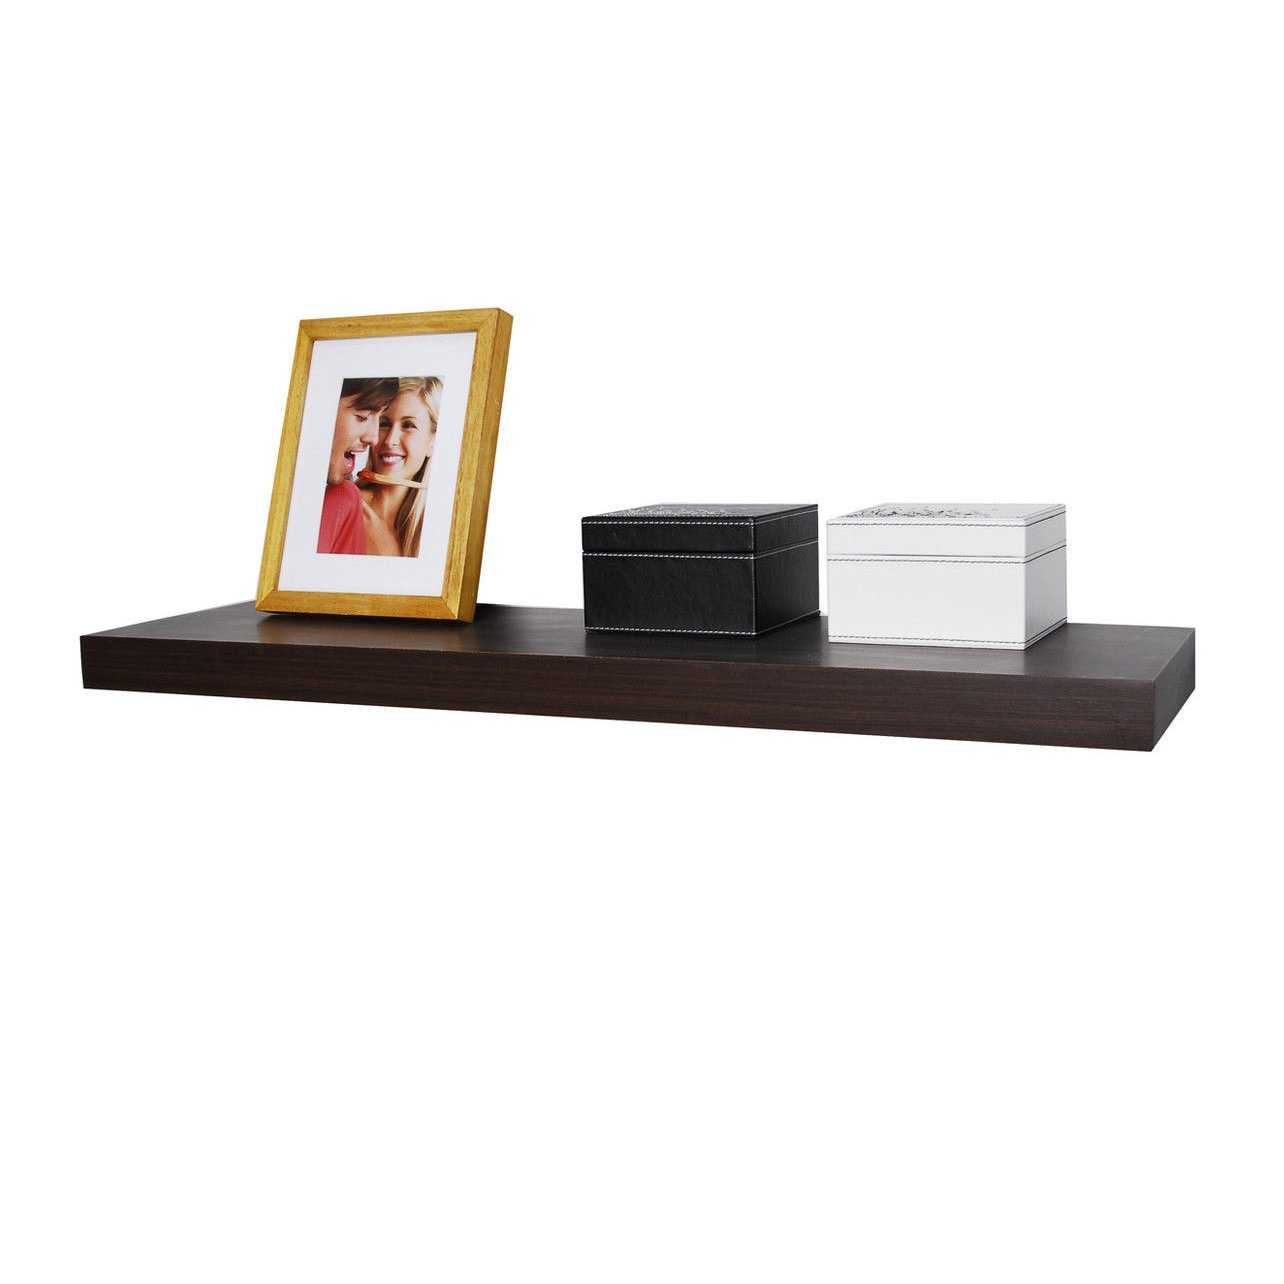 WELLAND Chicago Floating Shelves, 36 inches, Walnut